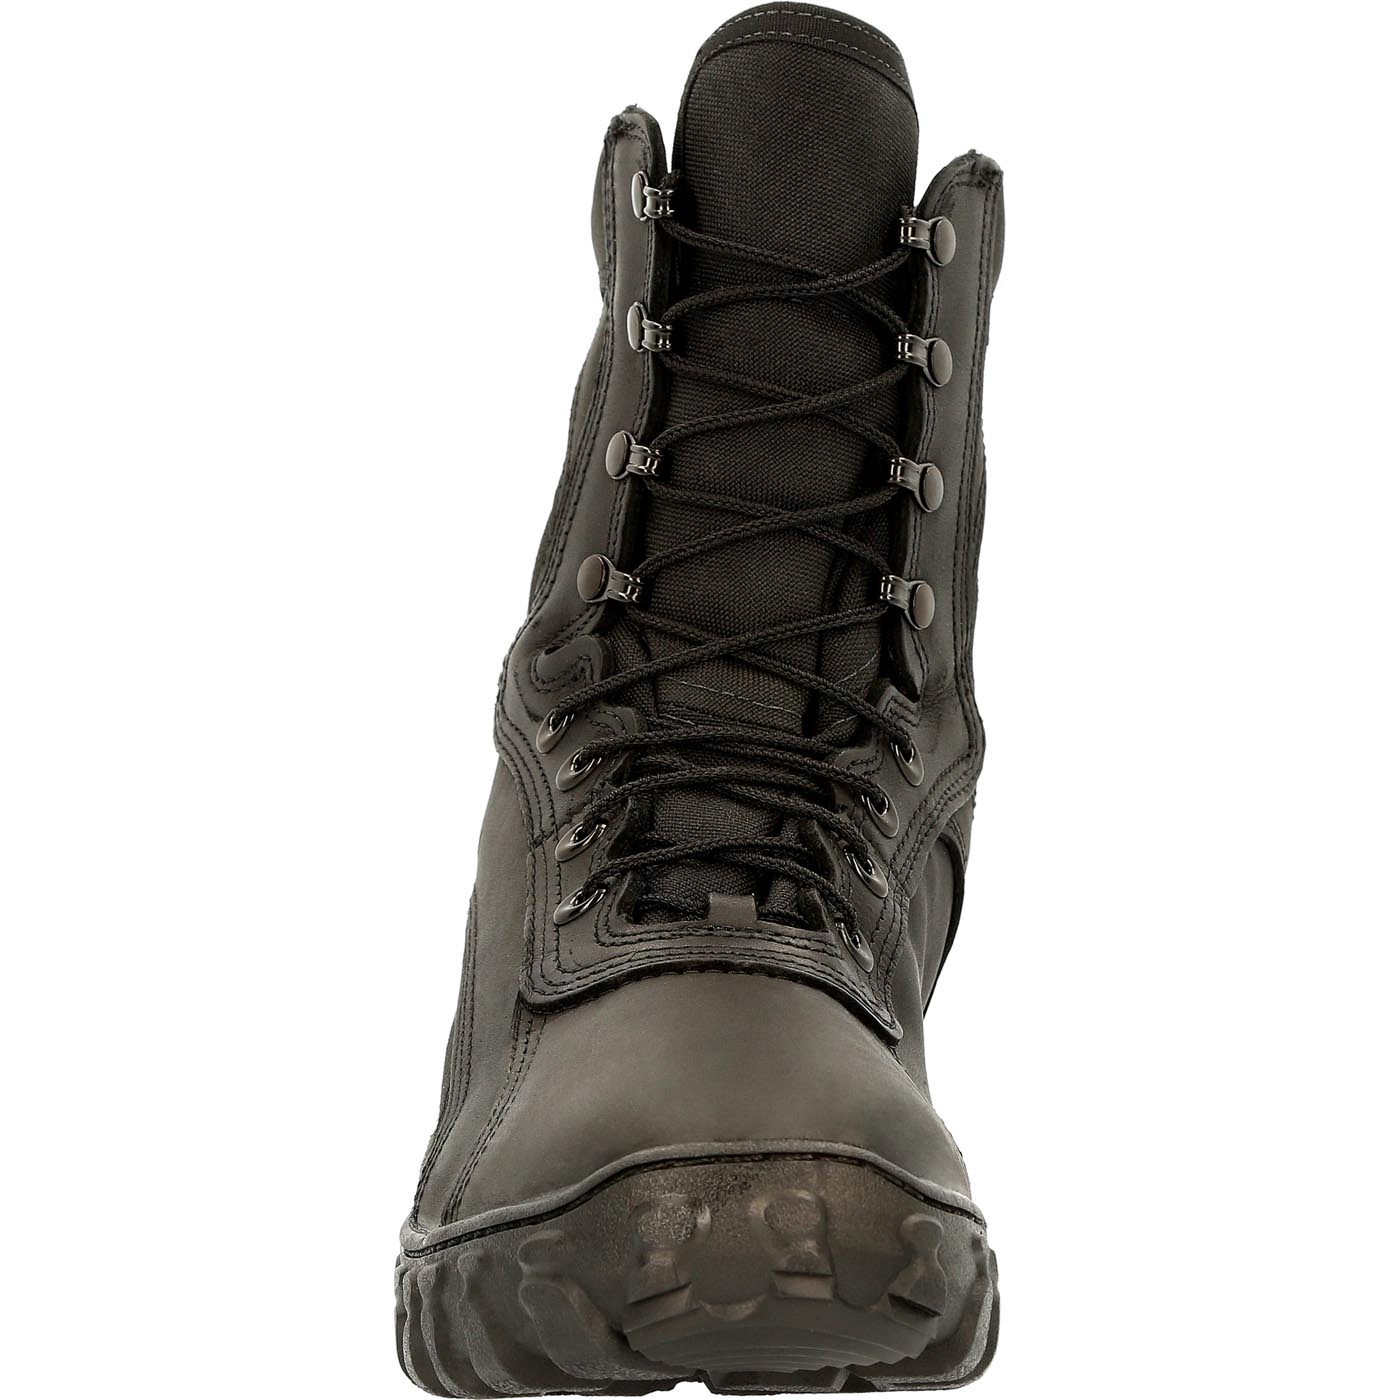 7158c4f19eb Rocky Black S2V 400G Insulated Tactical Military Boot